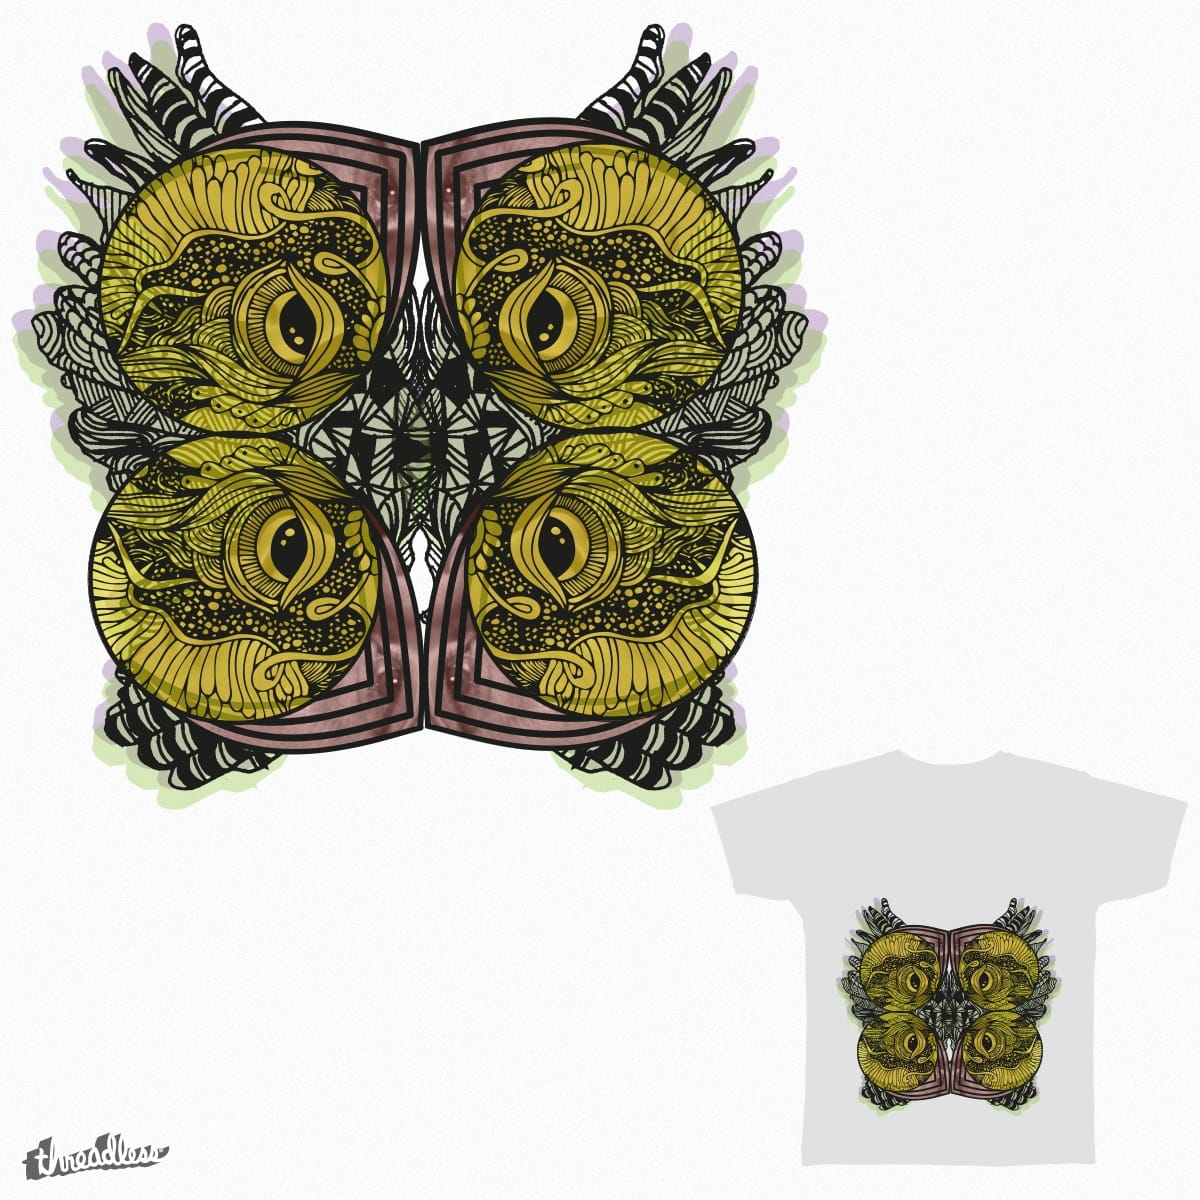 Midnight owl. by Samindri_De on Threadless